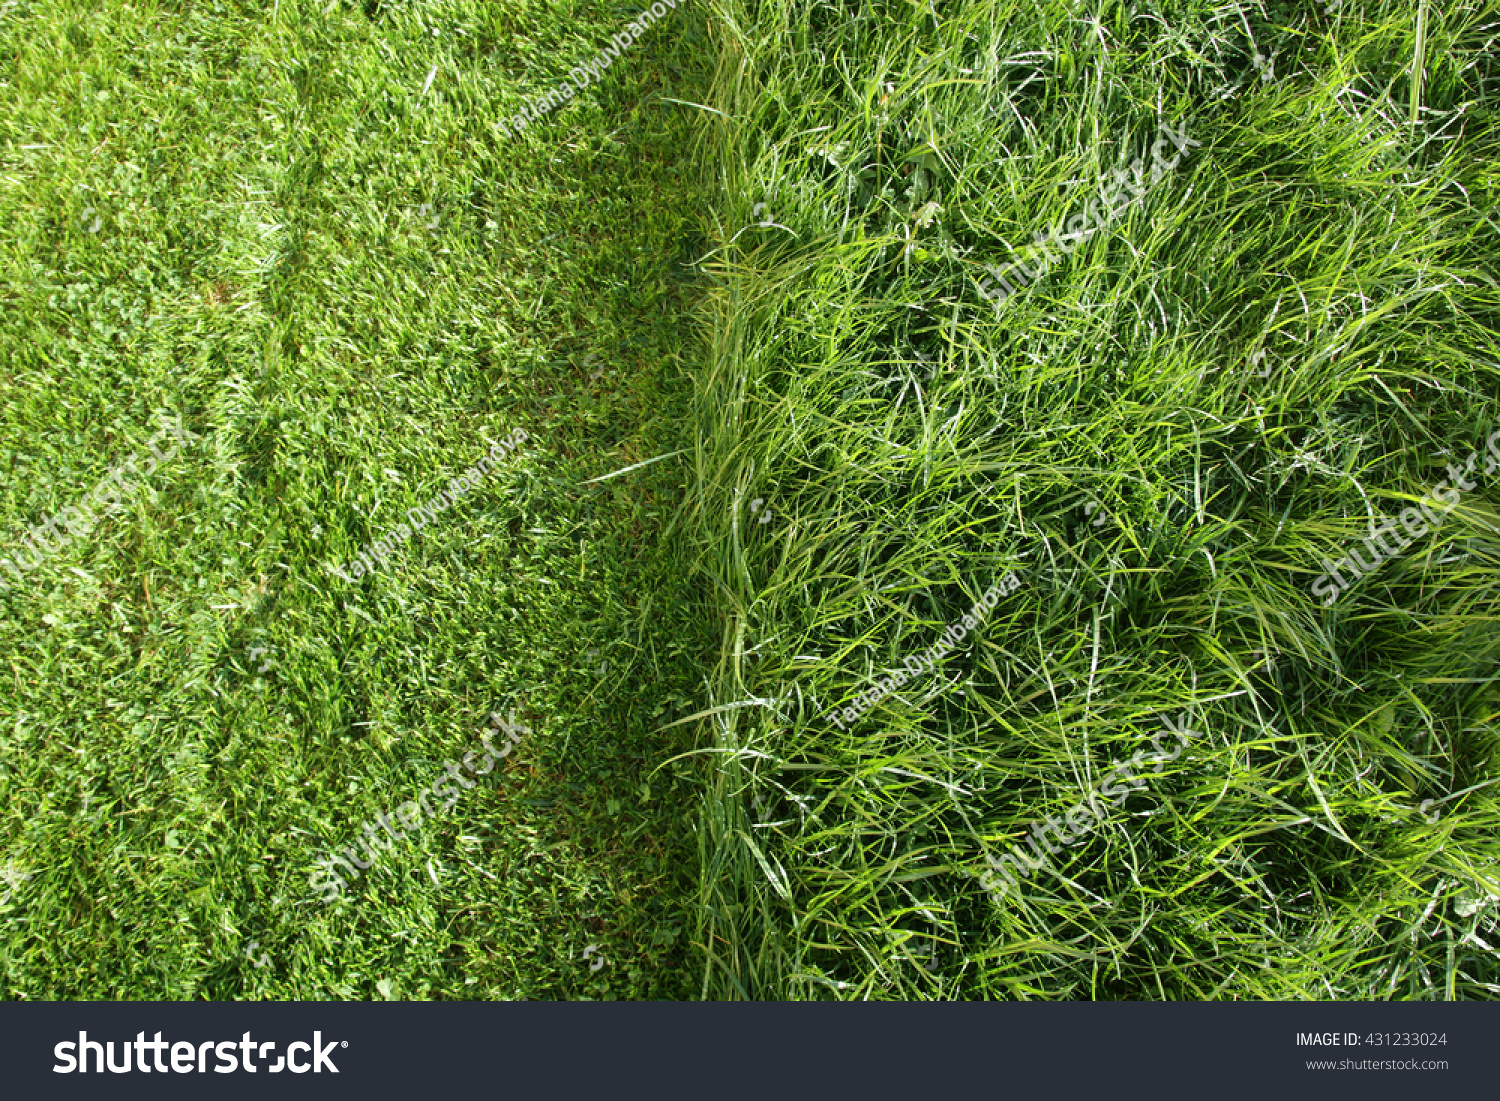 how to cut very long grass